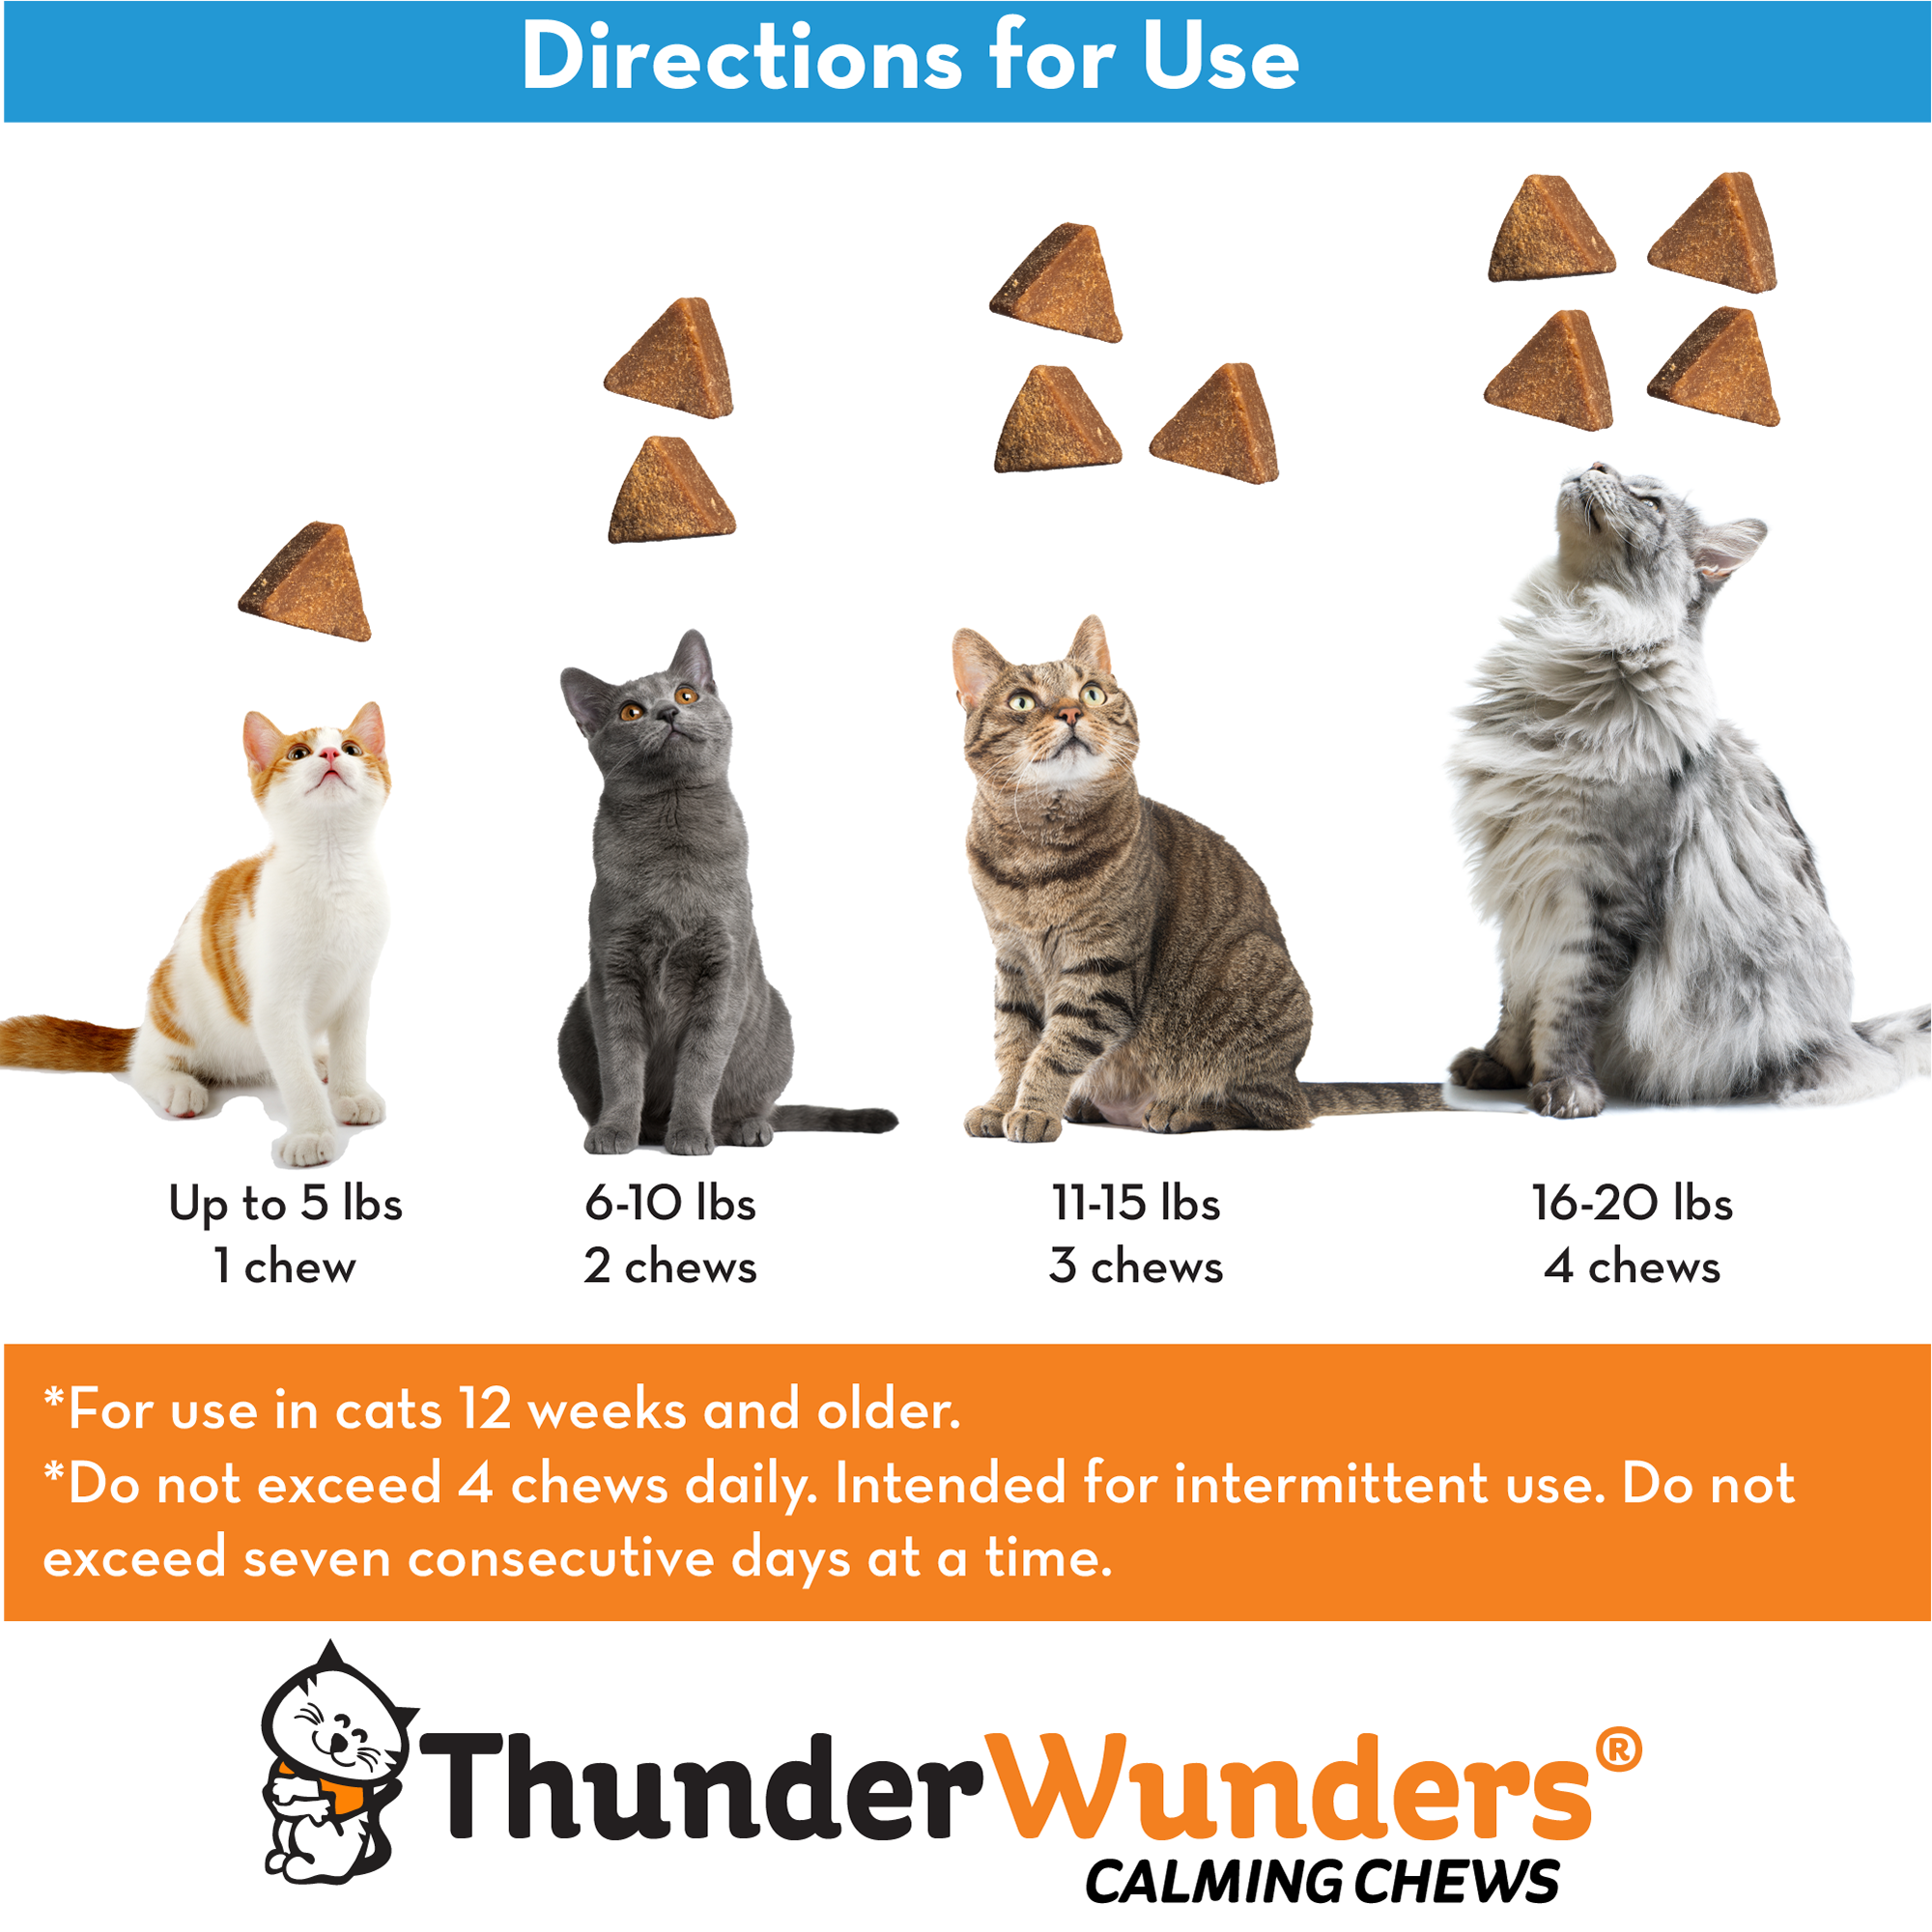 ThunderWunders Cat Calming Chews Directions for Use